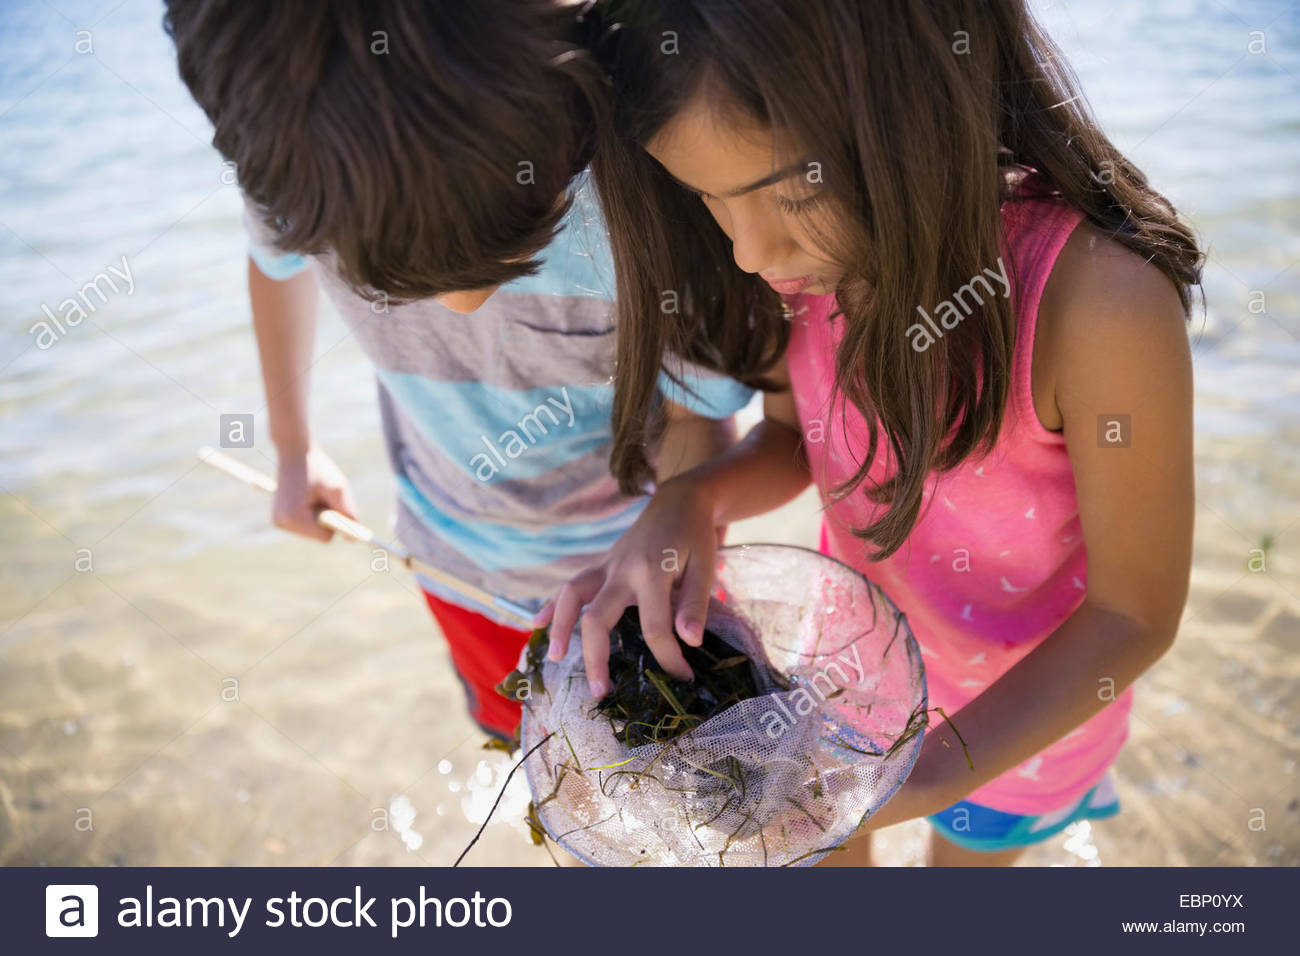 Boy and girl clam digging on beach - Stock Image